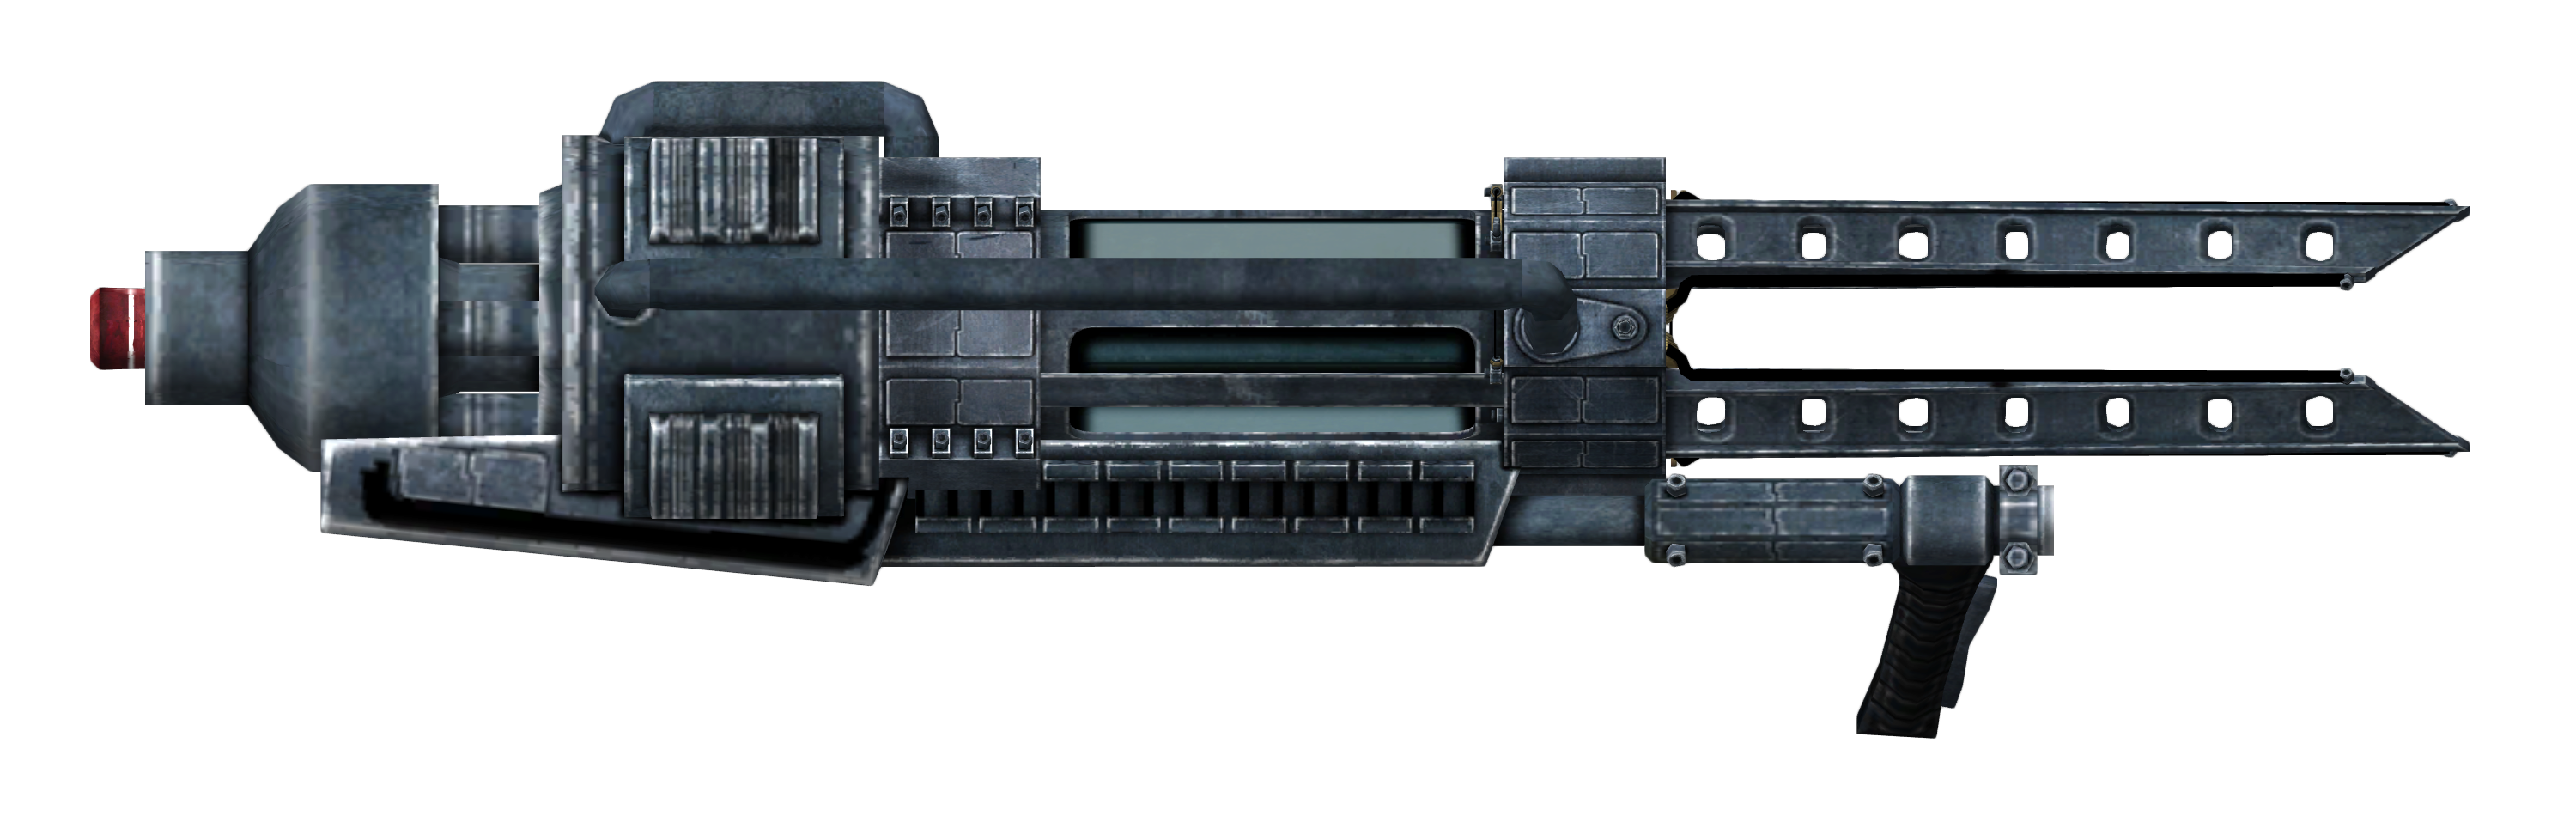 Tesla cannon.png